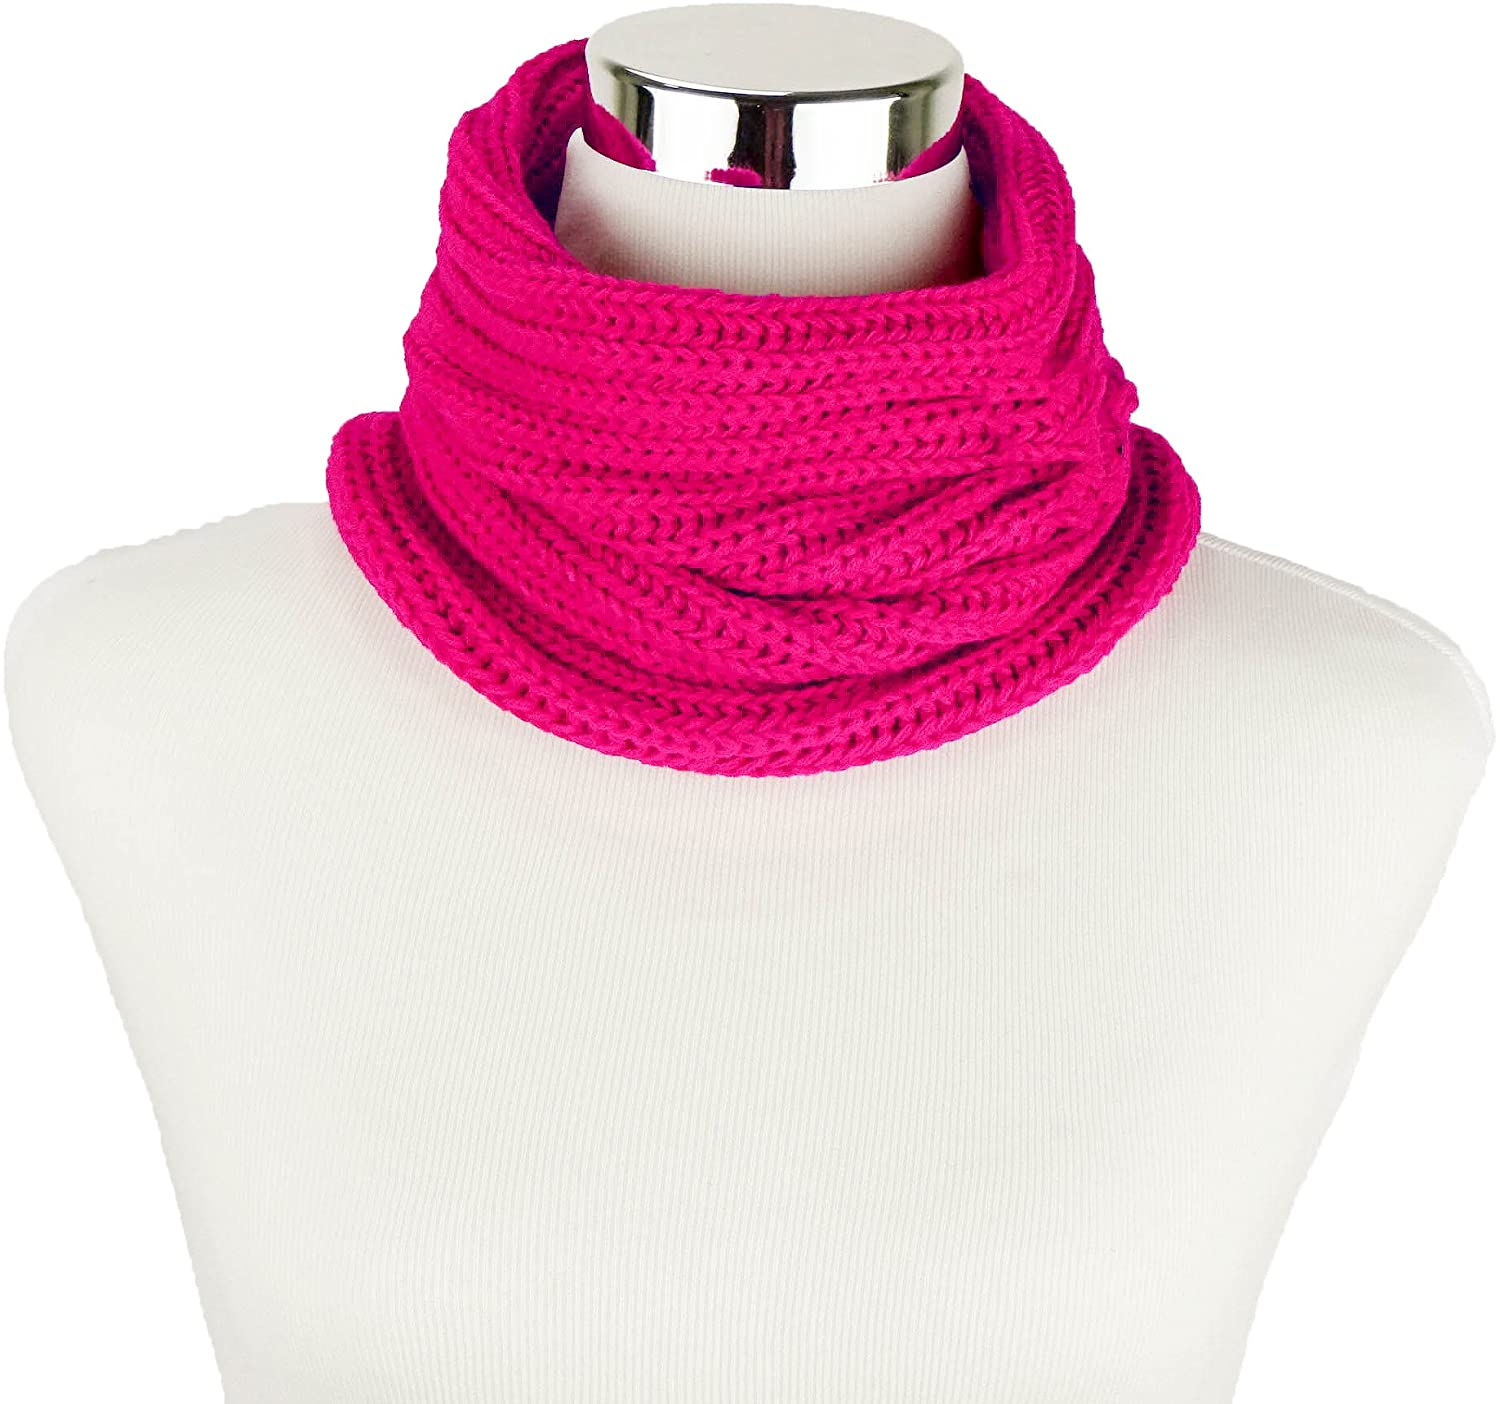 Fuchsia Women's Knitted Infinity Scarf Cowl by Sweet in the City